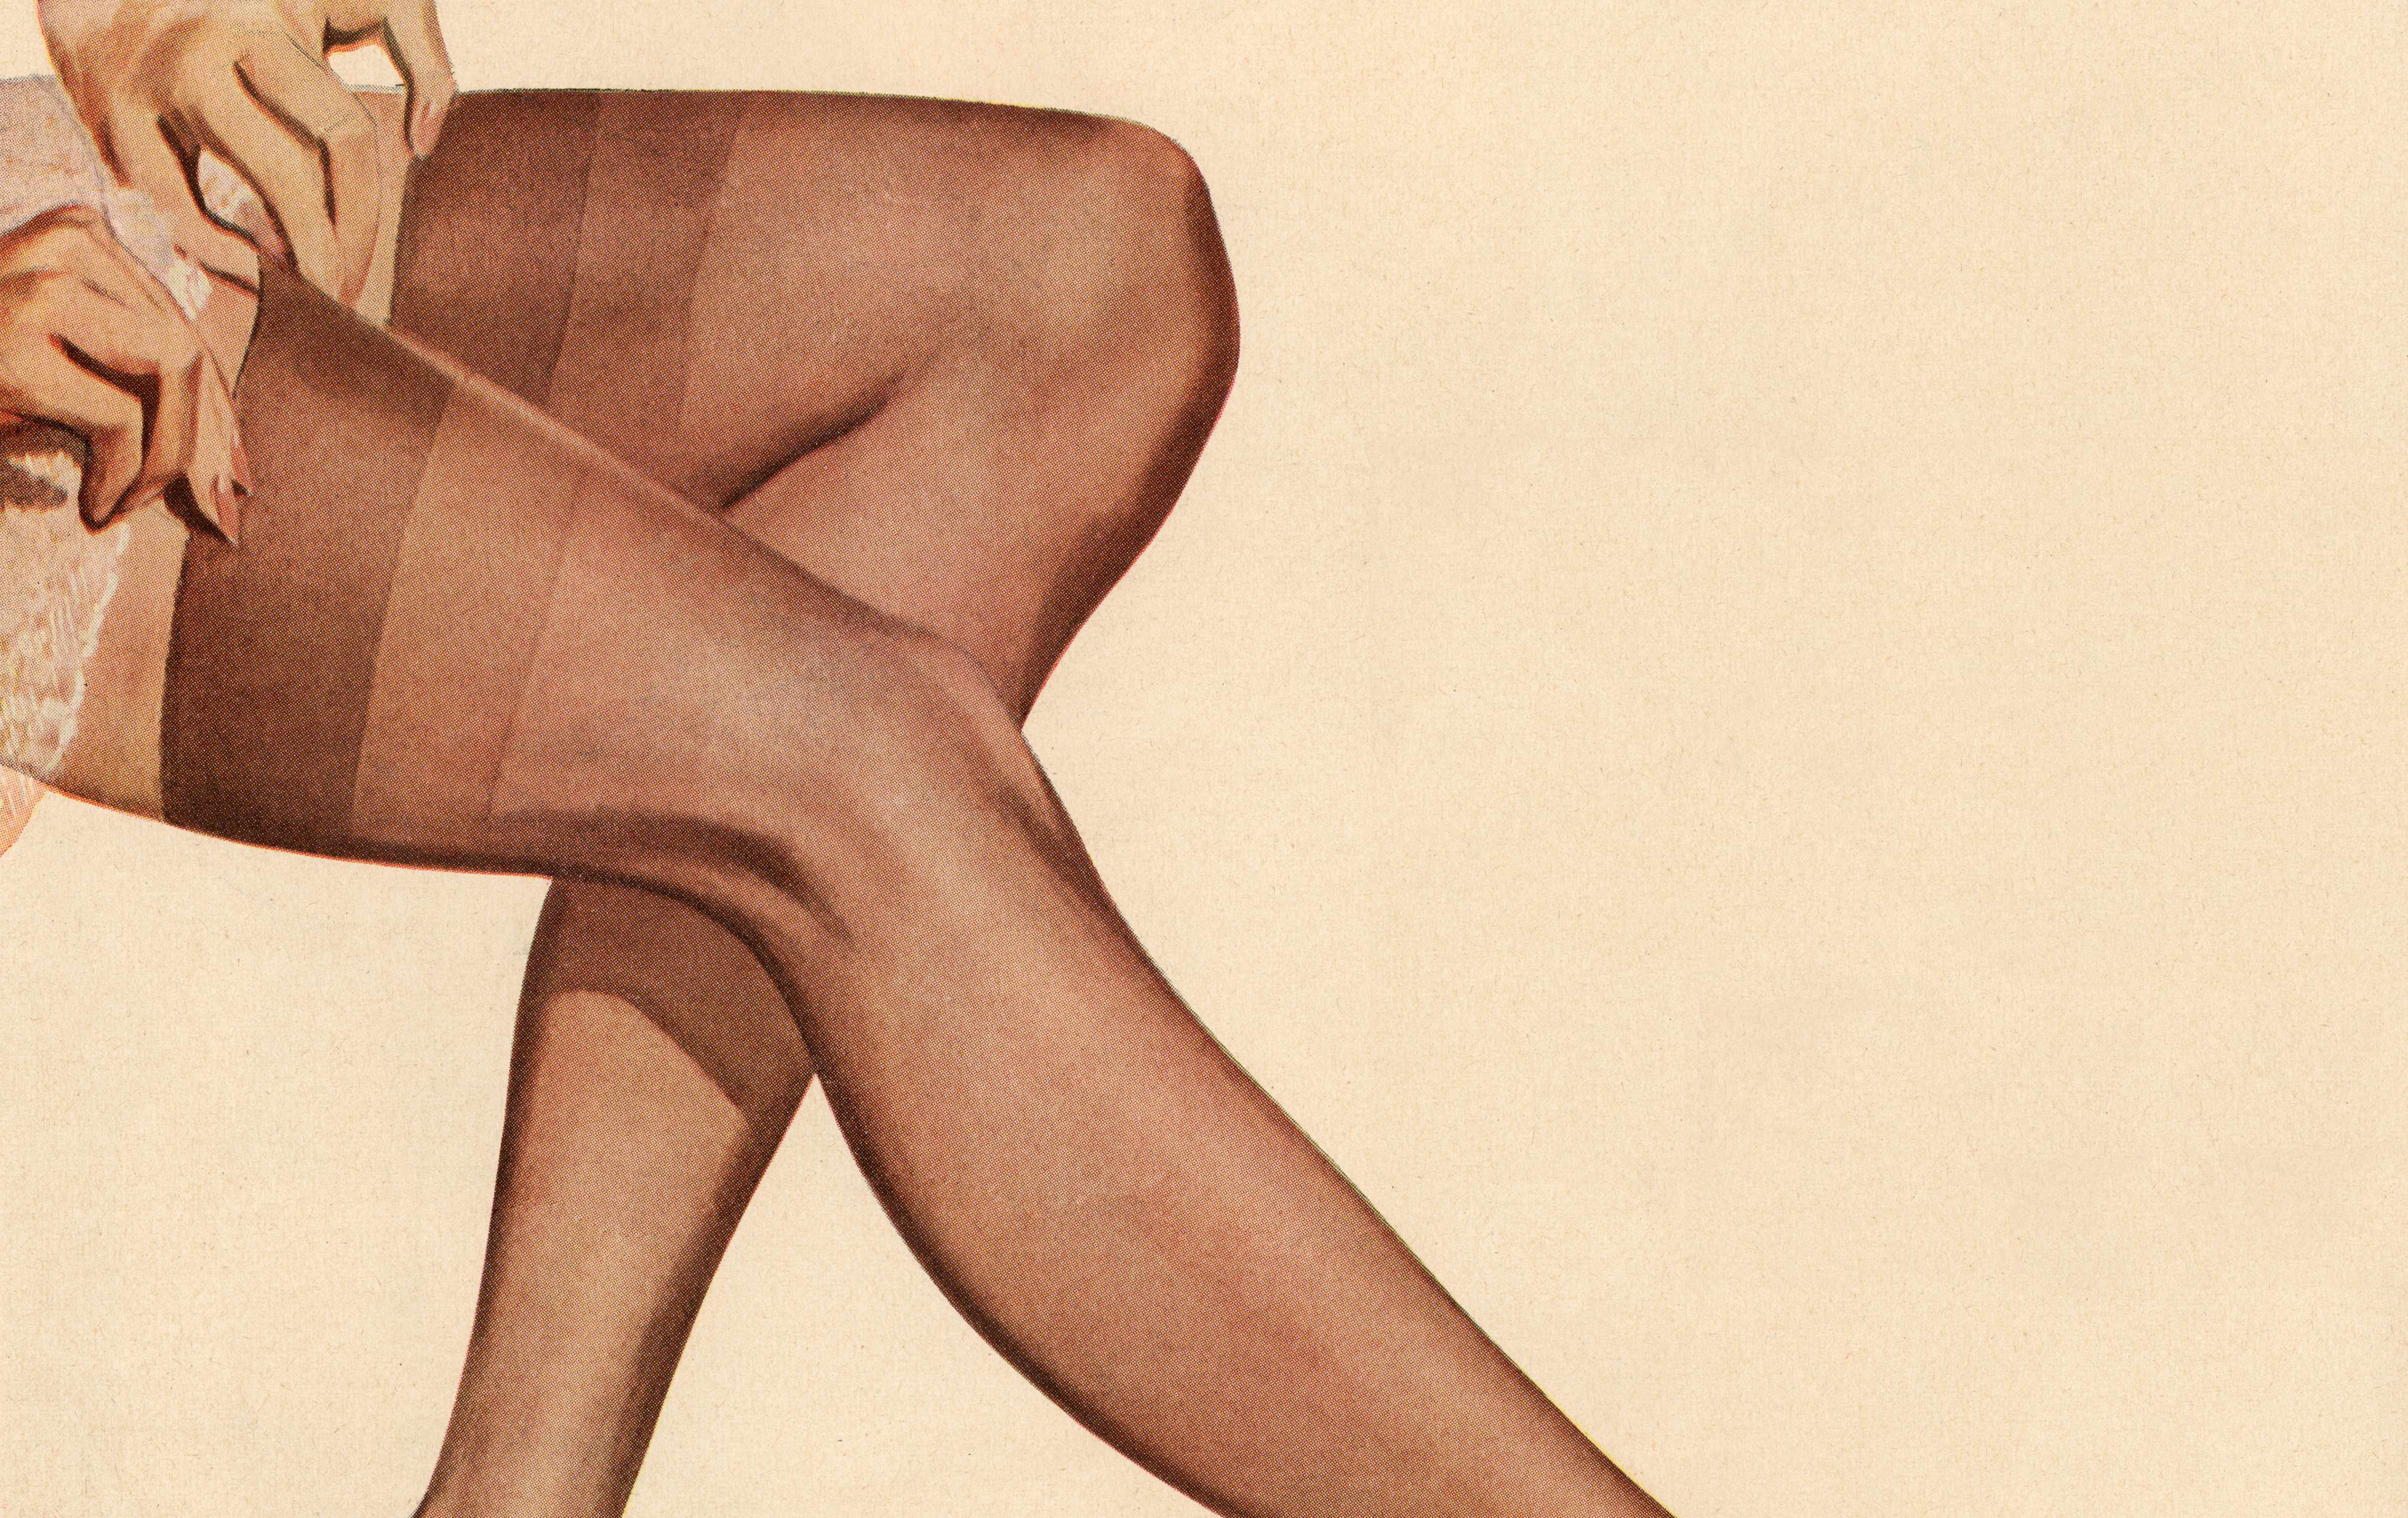 A 1954 illustration of a woman wearing nylons. Lightweight, easy to conceal and fiercely sought after, stockings were a favourite with smugglers. (Photo by Bridgeman)